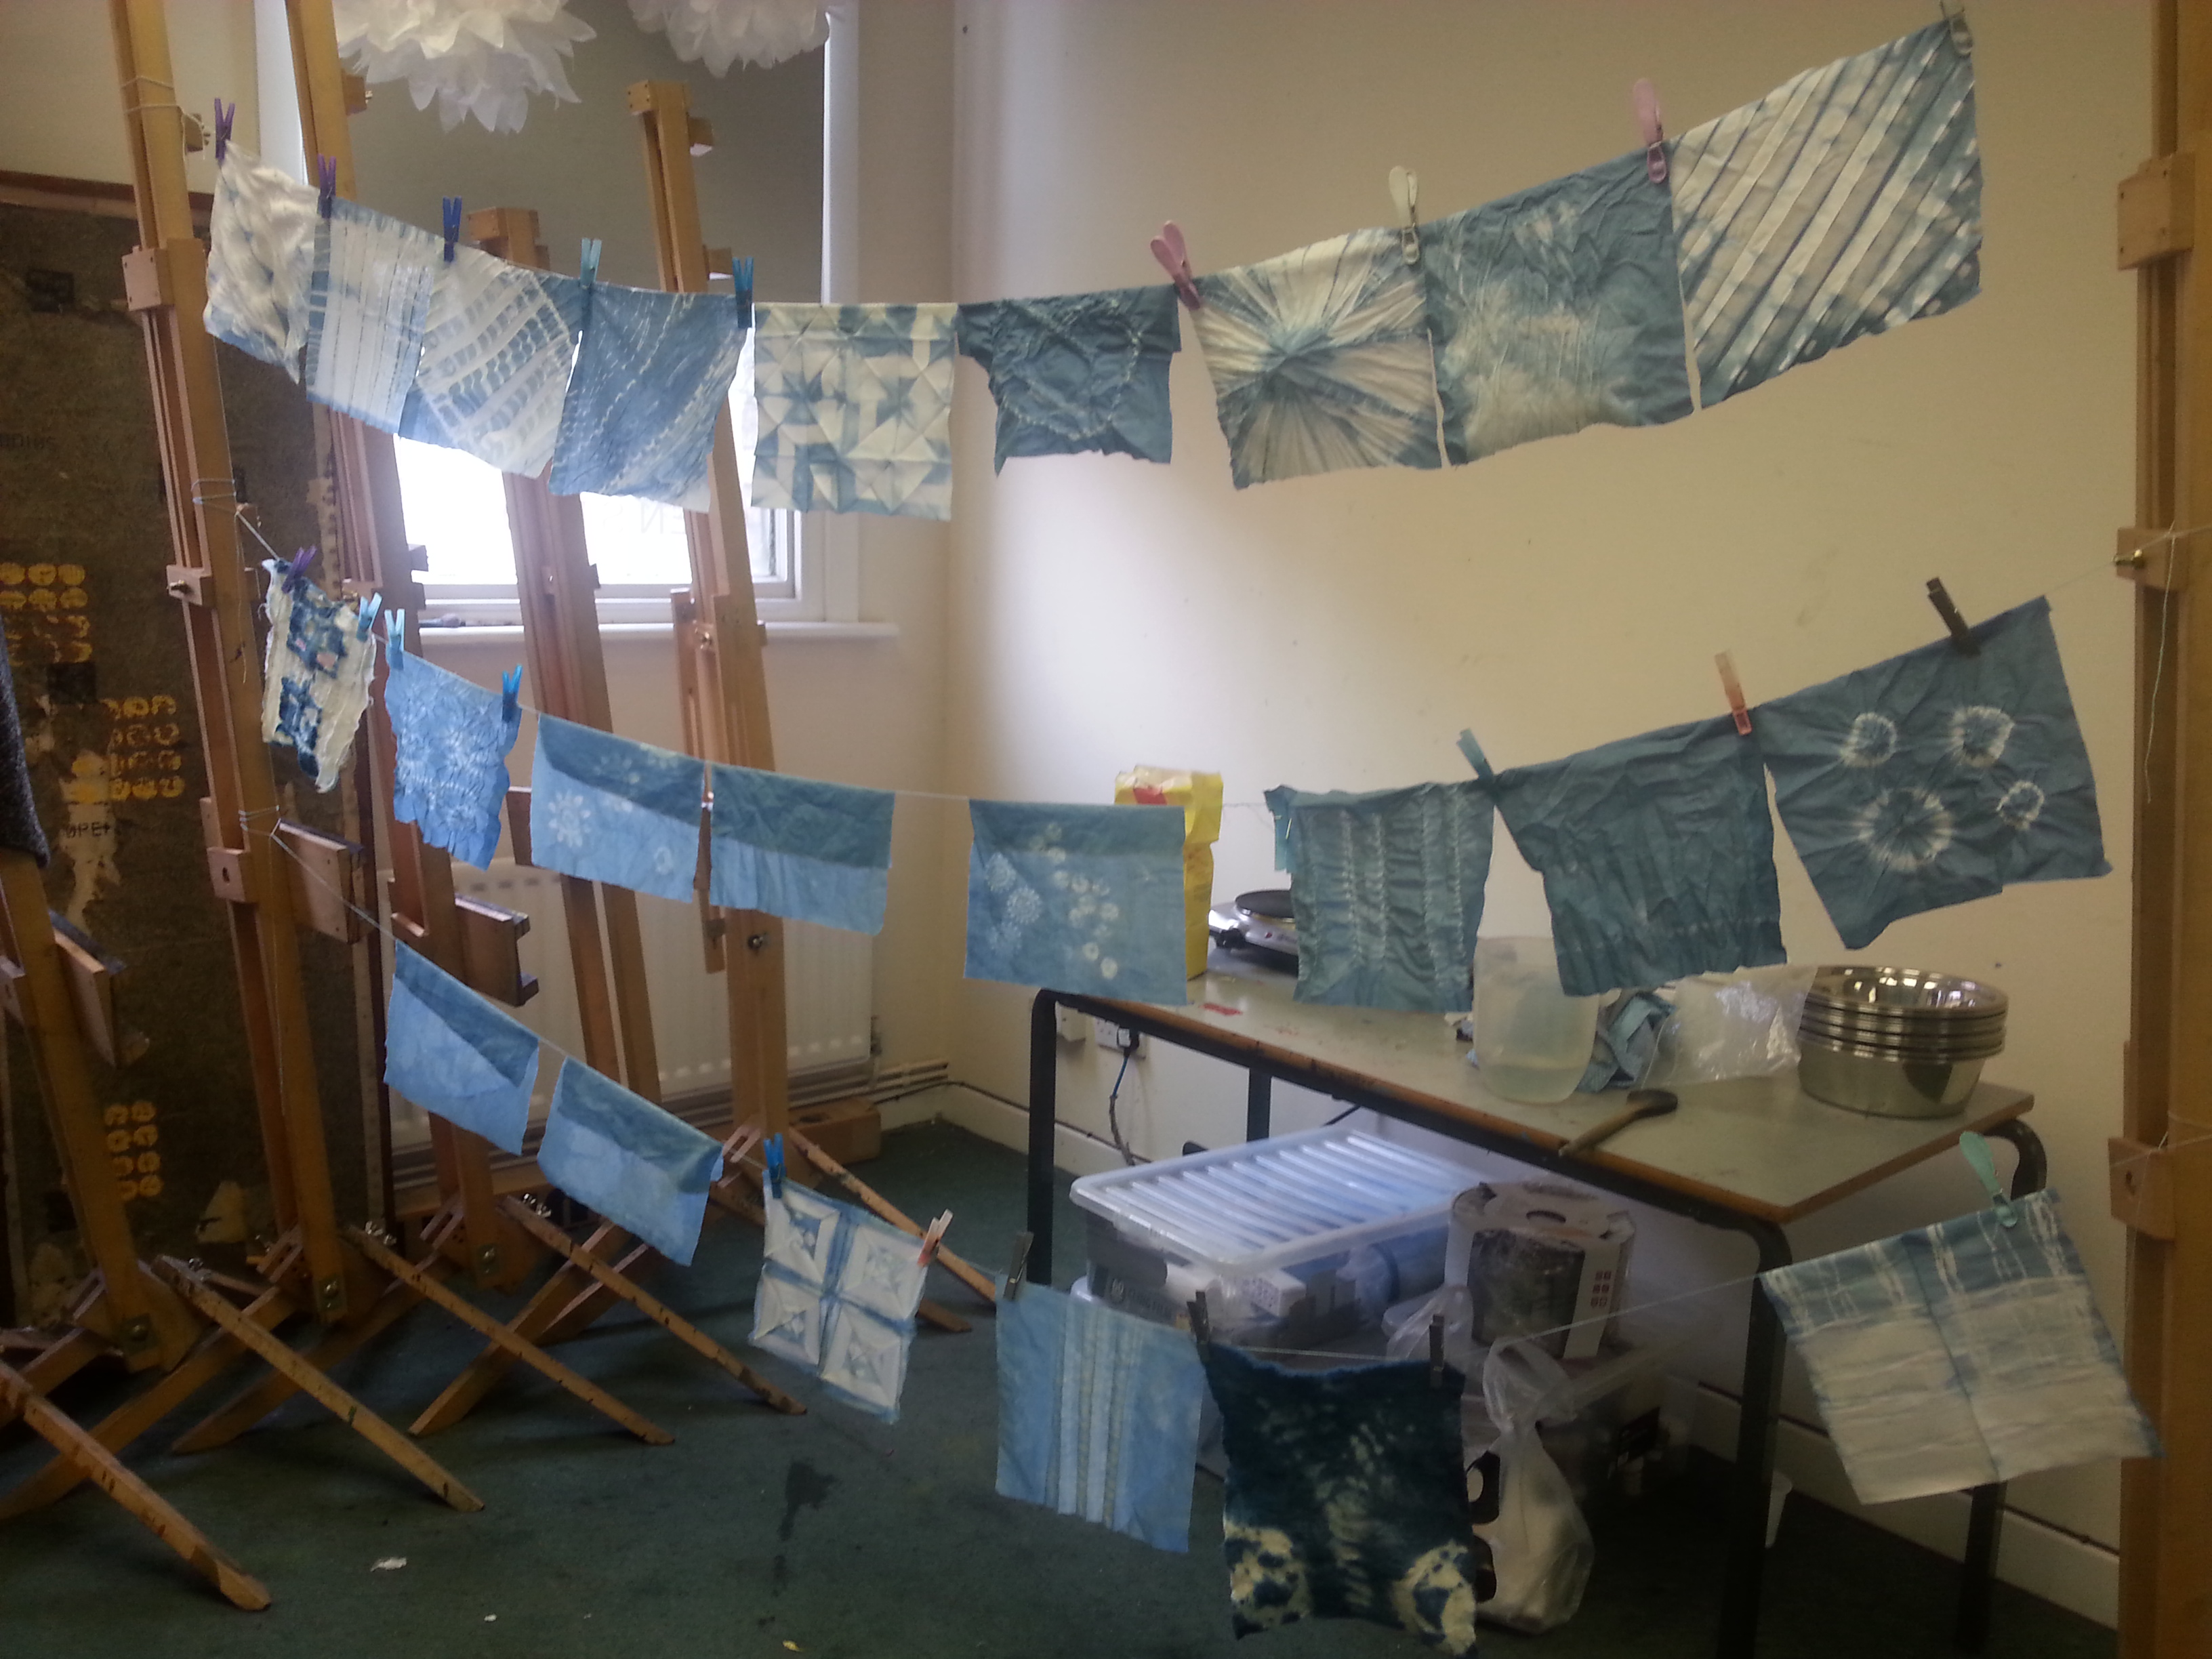 debbie tomkies of dt craft and design is teaching an indigo fabric dyeing workshop at black sheep wools